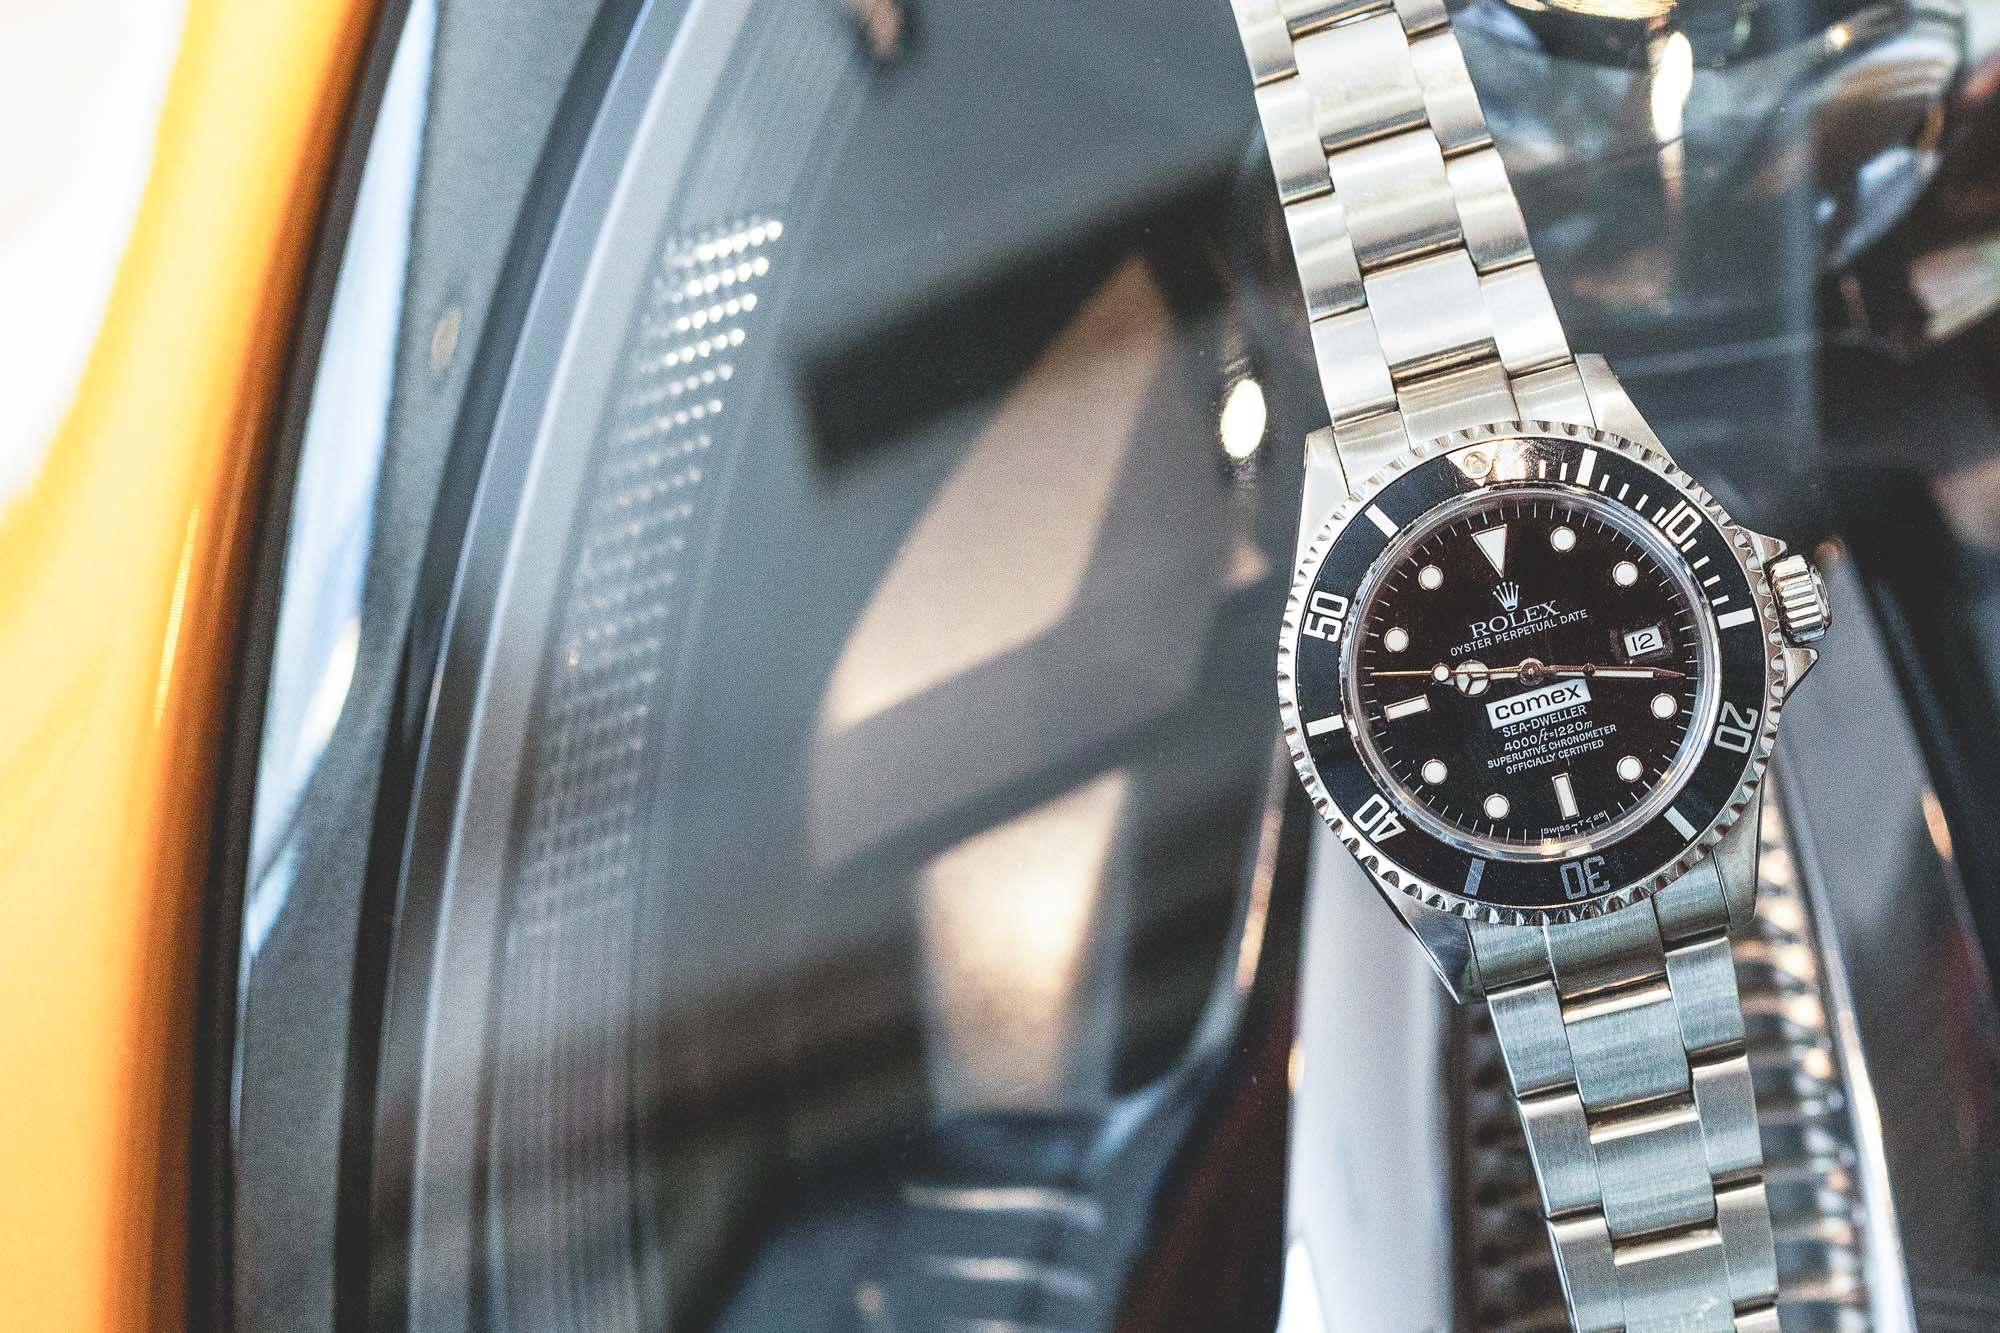 Rolex Sea-Dweller COMEX - Vente Antiquorum/ Monaco Legend Group du 17 juillet